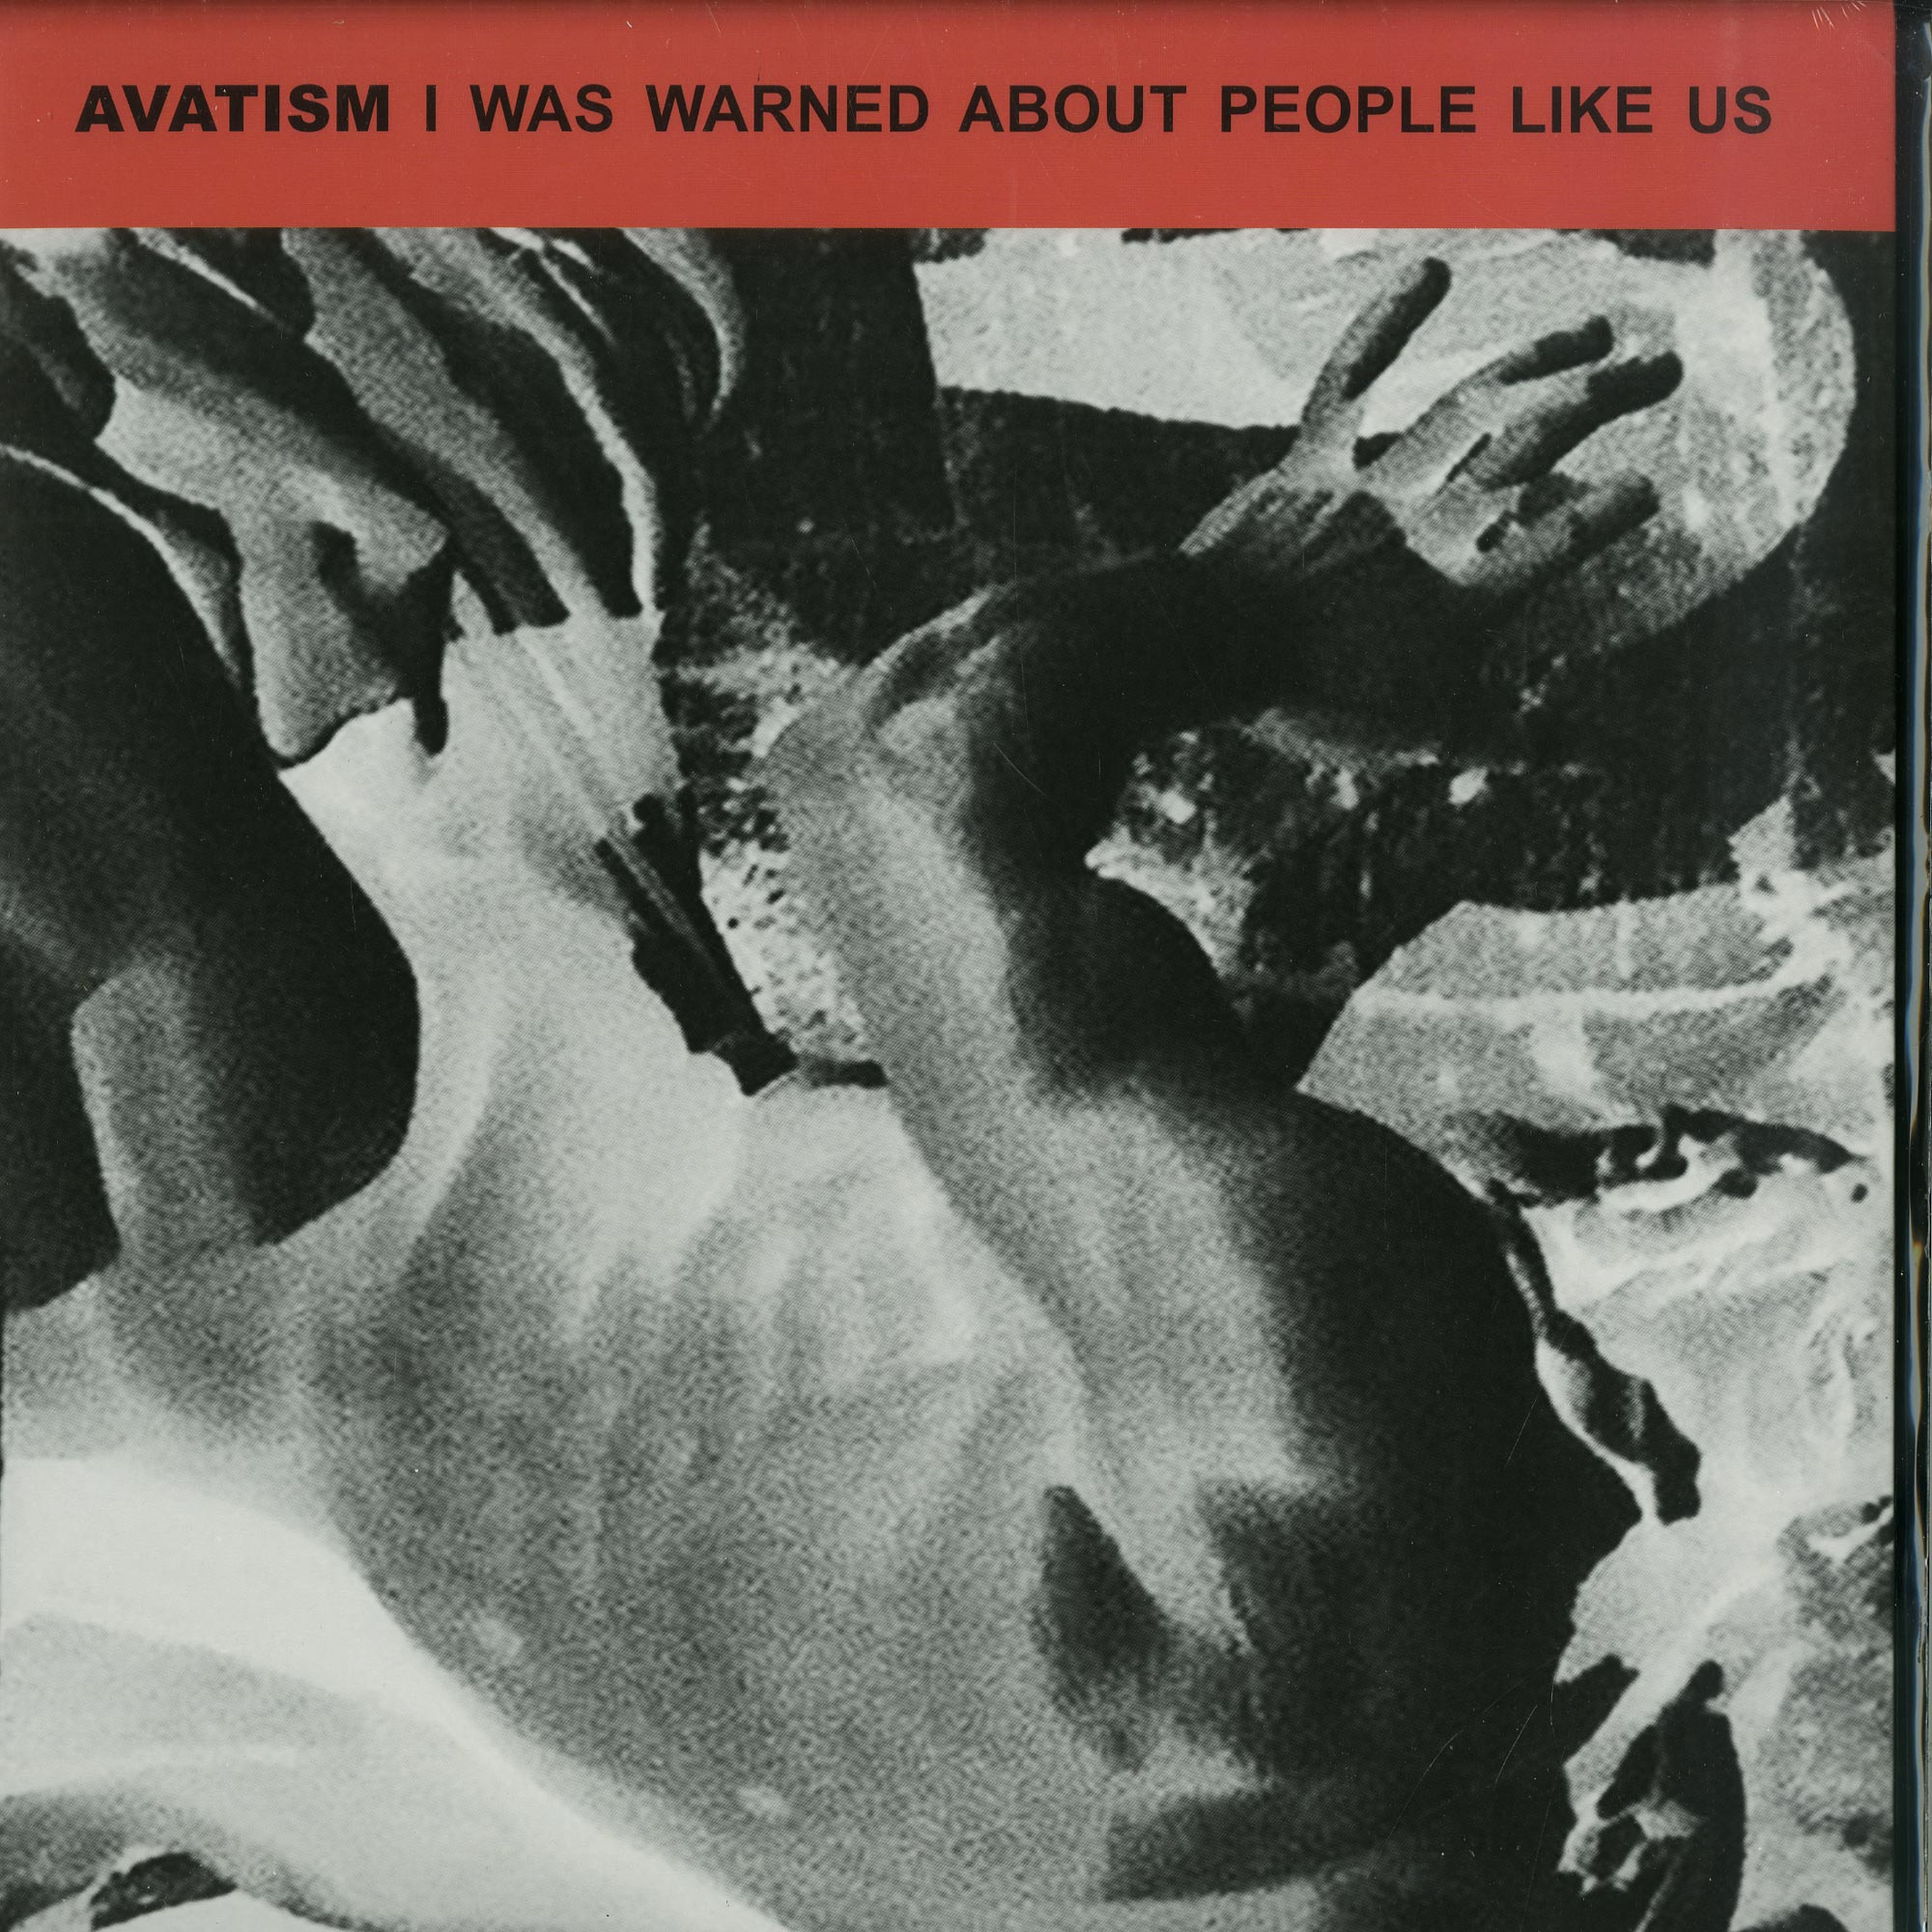 Avatism - I WAS WARNED ABOUT PEOPLE LIKE US